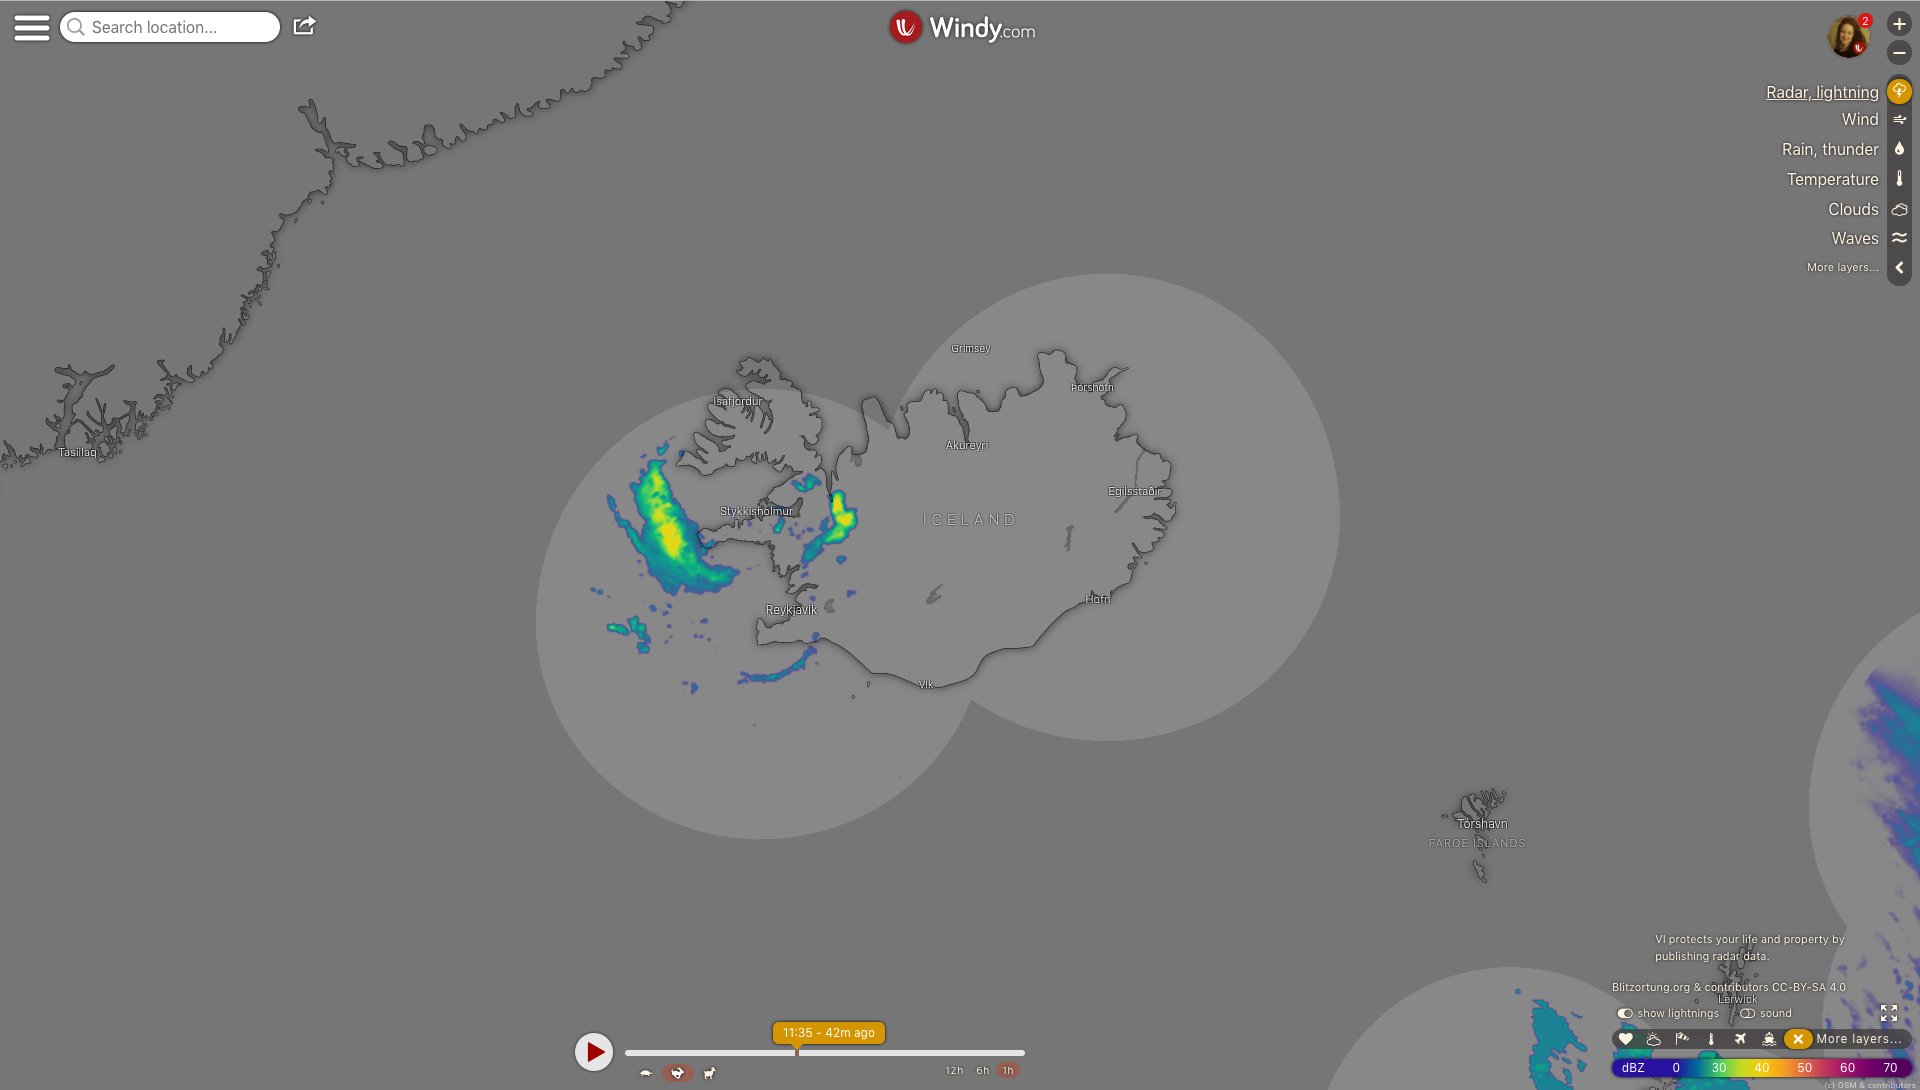 photo: Windy.com;link: https://www.windy.com/-Radar-lightning-radar?radar,64.572,-17.776,6,p:off;licence: cc;desc: Radar, lightning map: Iceland